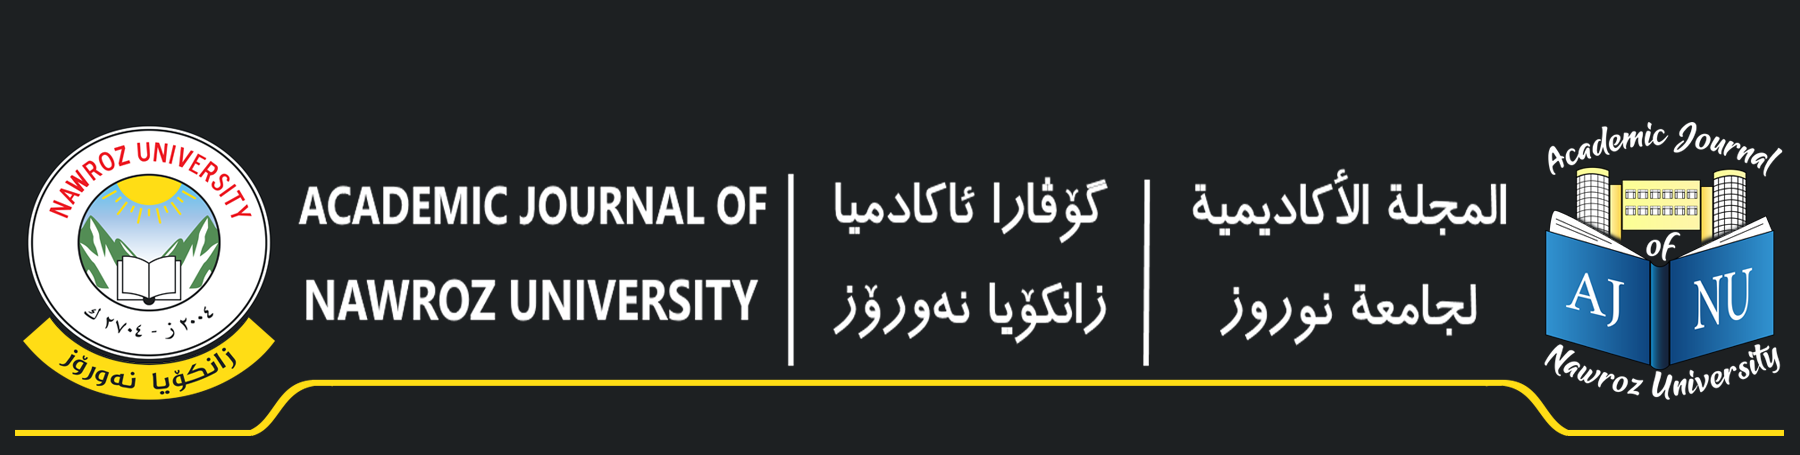 Nawroz University, Academic Journal of Nawroz University, ACAD J NAWROZ U